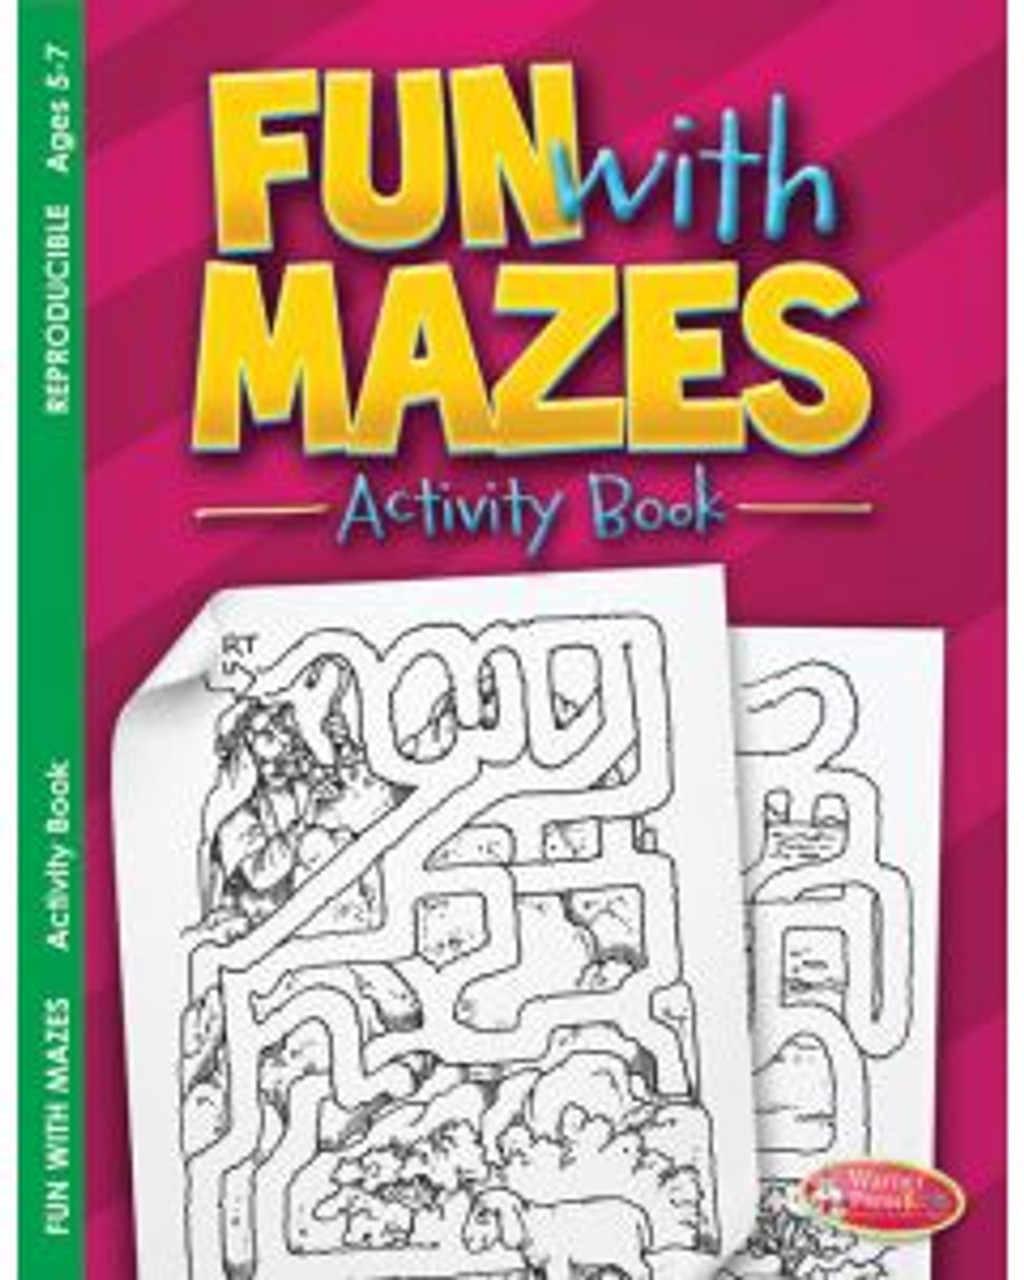 Fun With Mazes (activity book)